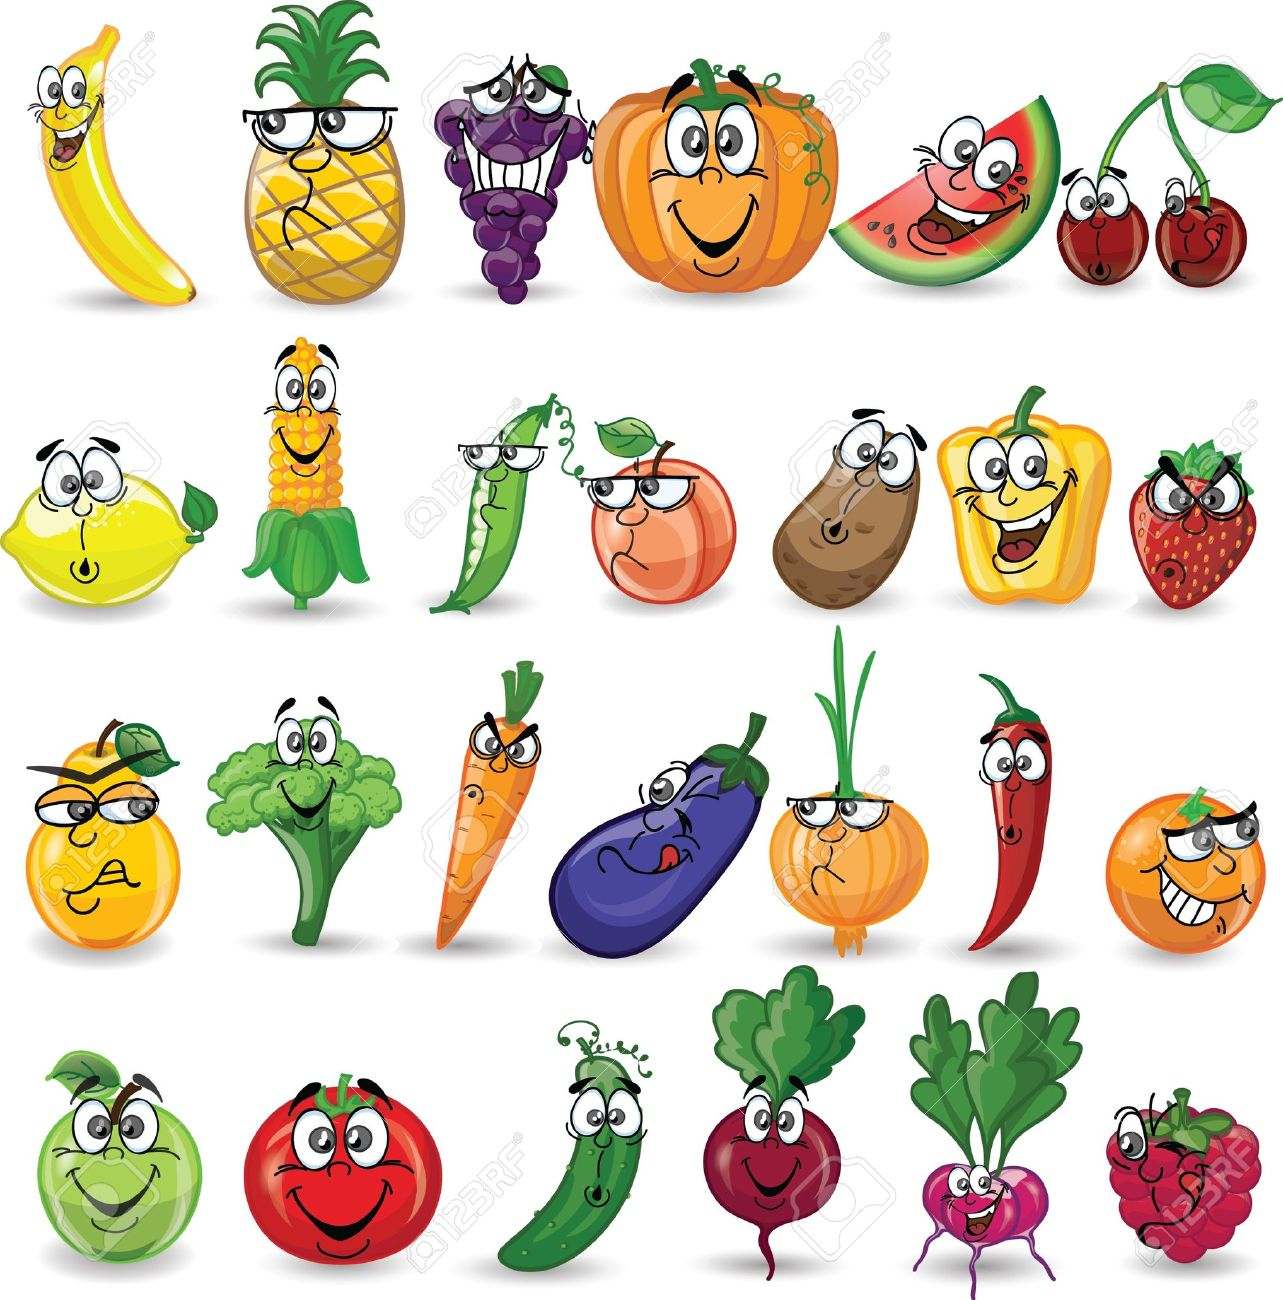 Cartoon vegetables and fruits - 21632778